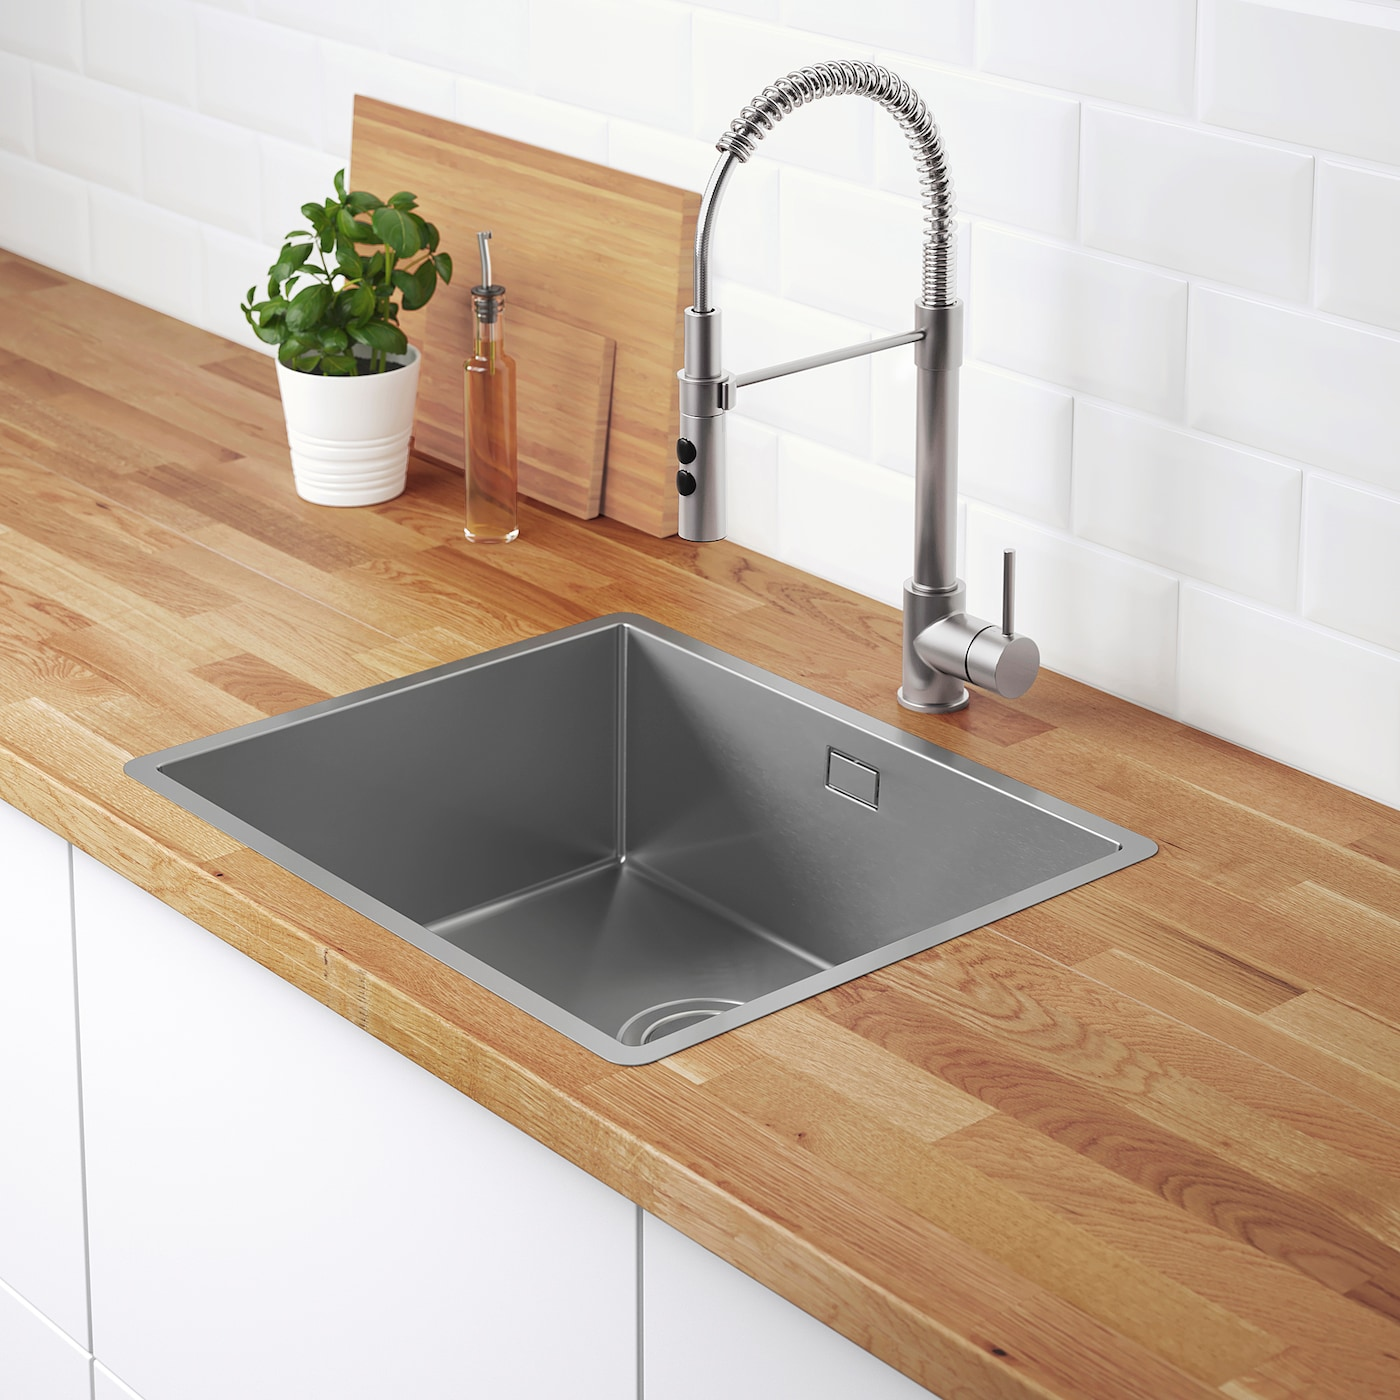 NORRSJÖN Inset sink, 10 bowl - stainless steel 10x10 cm